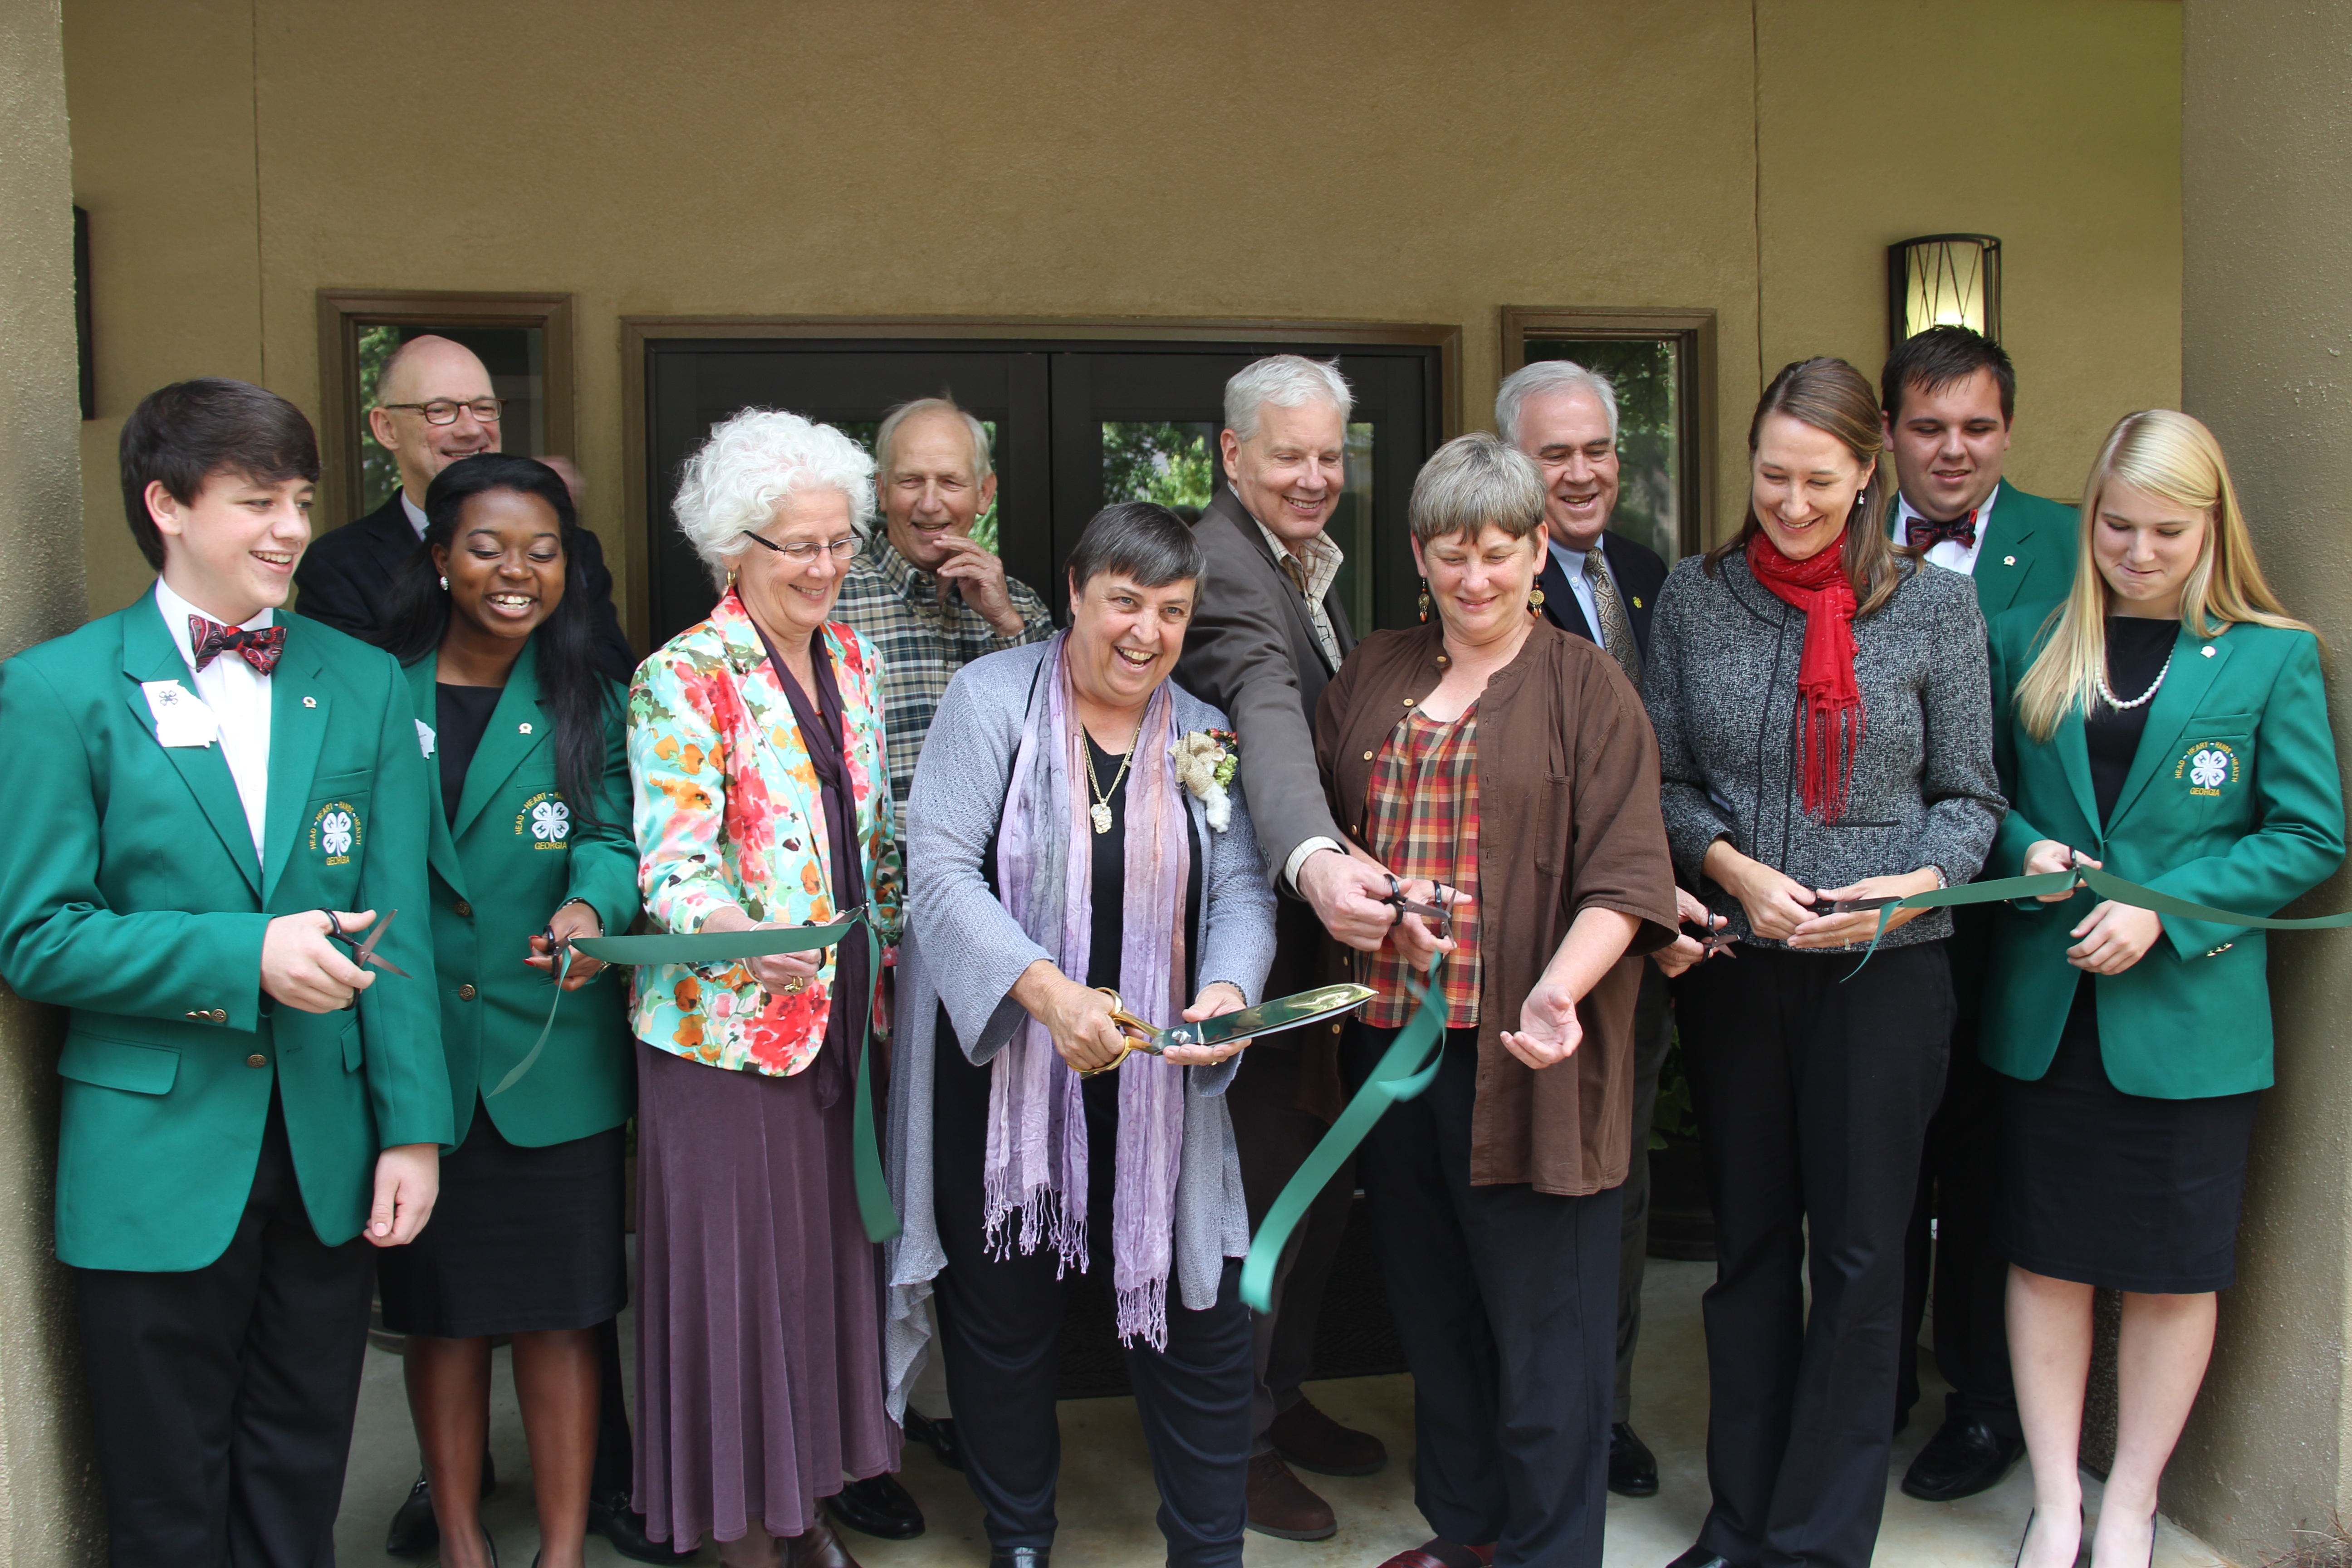 Diane Davies wields a ceremonial pair of scissors to cut the ribbon at Rock Eagle 4-H Center museum that now bears her name. The Diane Davies Natural History Museum honors Davies for creating the Georgia 4-H Environmental Education Program. Pictured left to right during the ribbon cutting are Georgia 4-H State Representative Brett Allen, Georgia 4-H State Represenative Maya Mapp, University of Georgia Cooperative Extension Associate Dean Beverly Sparks, Davies, Sara Thompson, Georgia 4-H Environmental Education Program Director Melanie Biersmith, Georgia 4-H Northeast District Representative Elizabeth Savage, (back row) Georgia 4-H Foundation Board of Trustees Chairman Jay Morgan, Retired Georgia 4-H State Leader Tom Rodgers, UGA College of Agricultural and Environmental Sciences Dean J. Scott Angle, Georgia 4-H State Leader Arch Smith and Georgia 4-H President Oakley Perry.